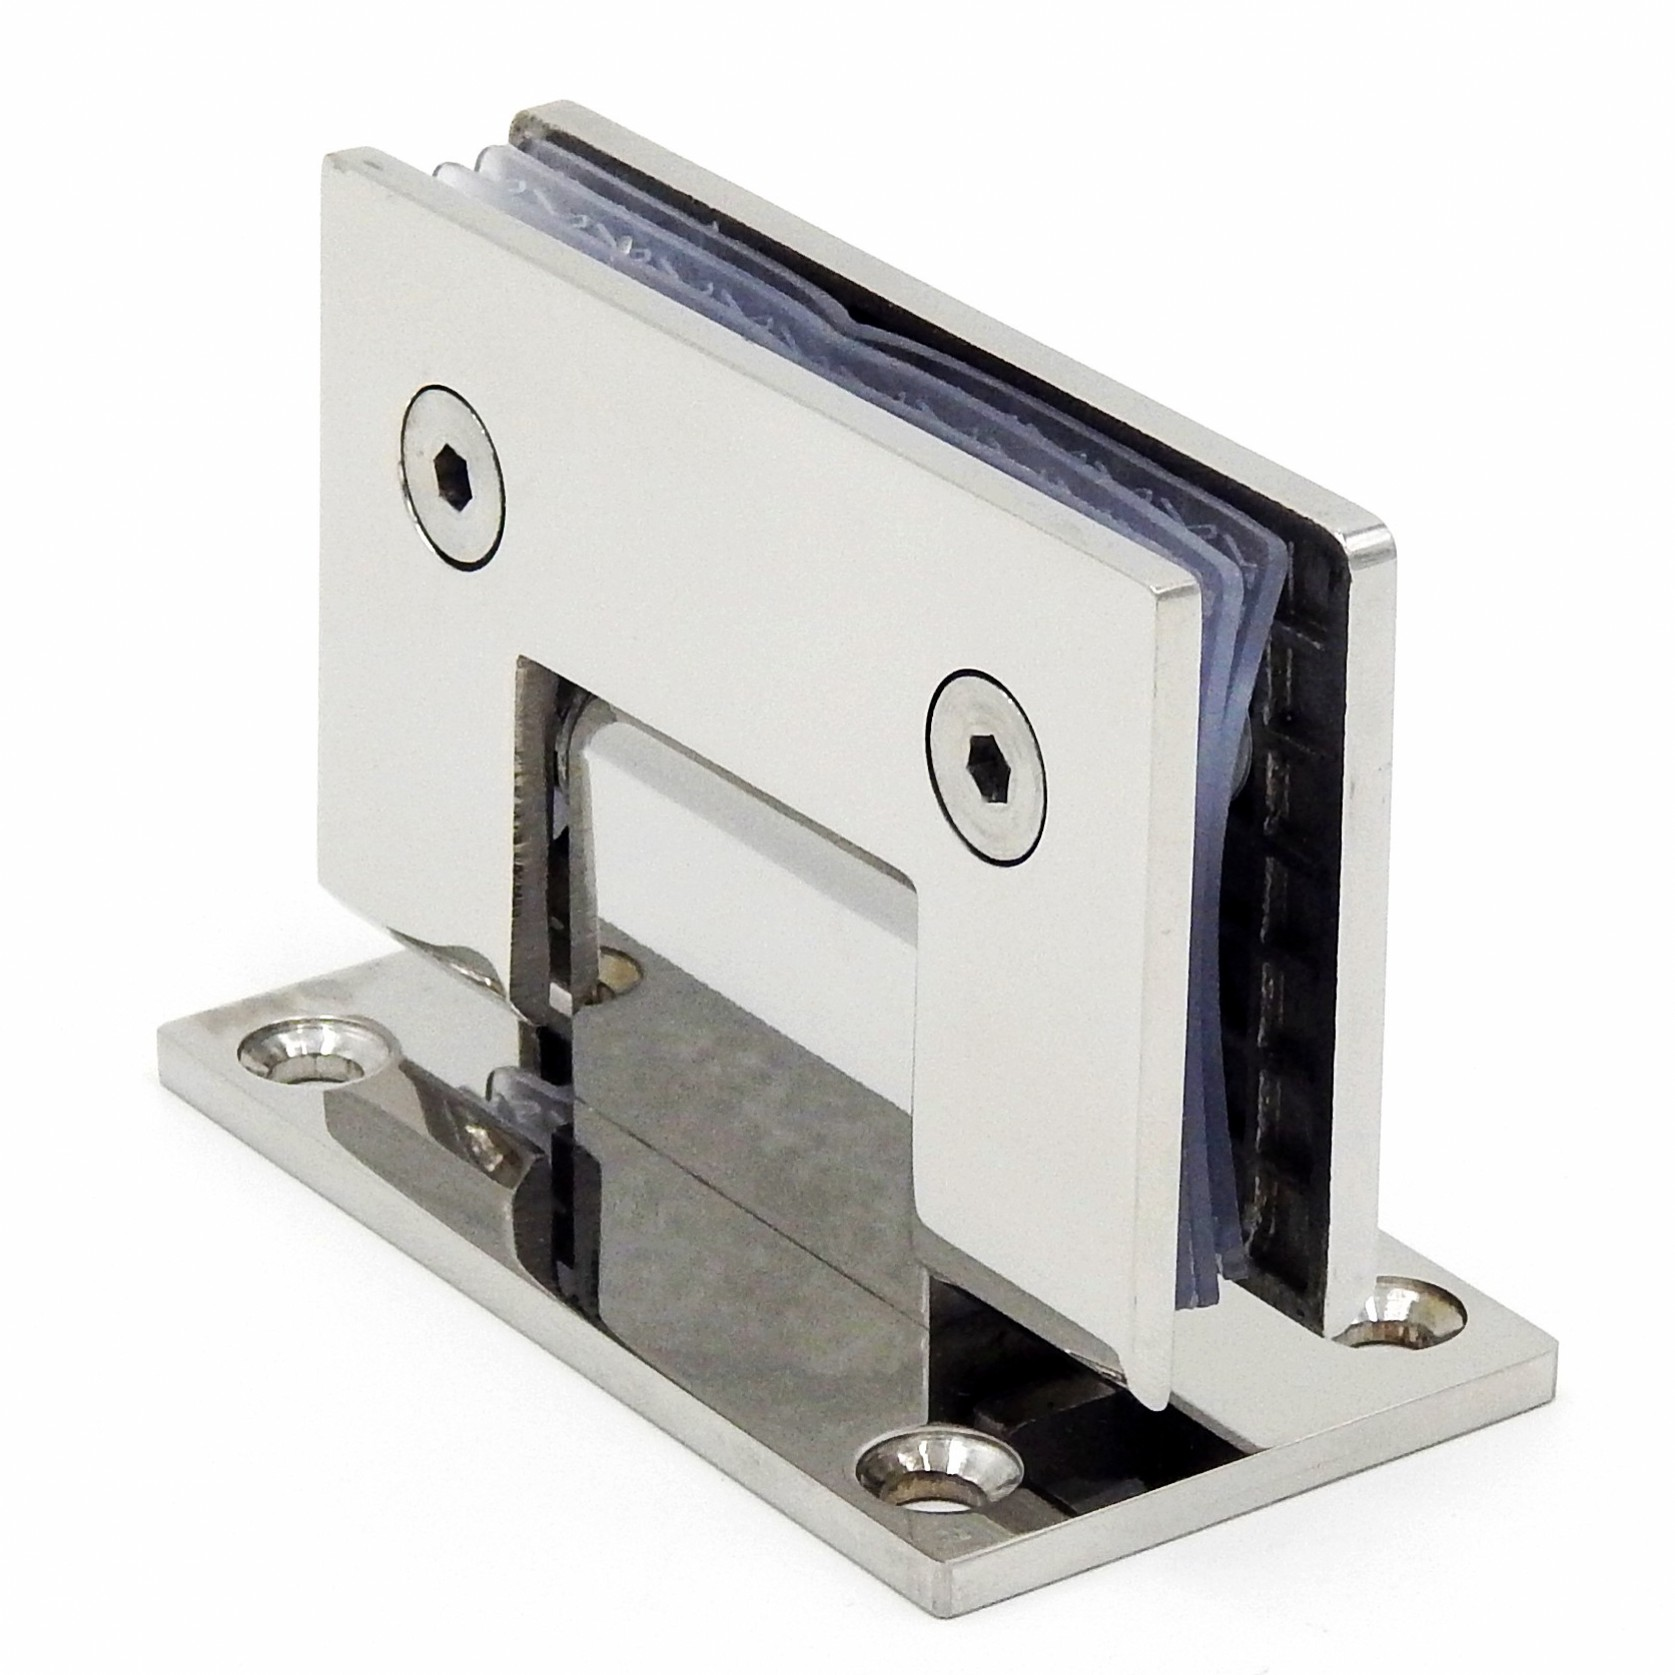 Bathroom Vanity Hinges compare prices on 90 degree hinge- online shopping/buy low price